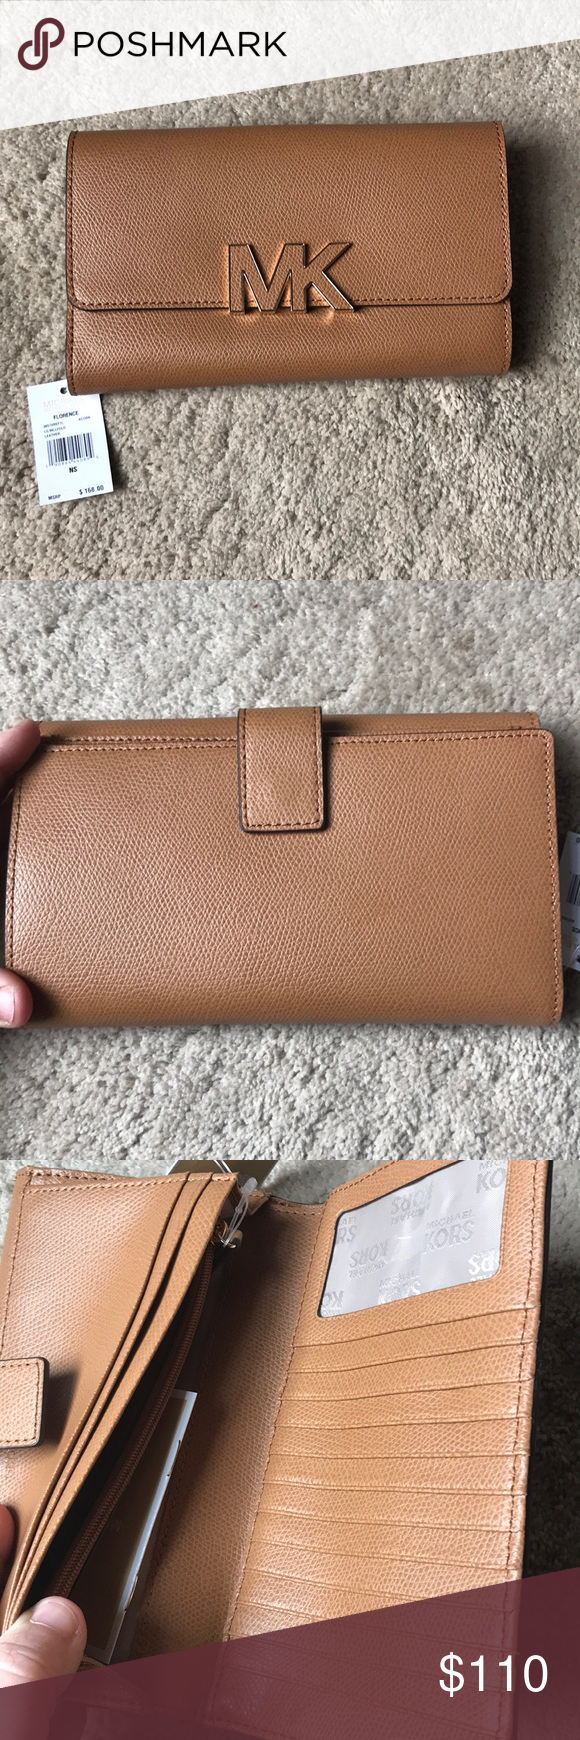 Nwt Authentic Michael Kors Wallet Billfold Satchel Small Acorn